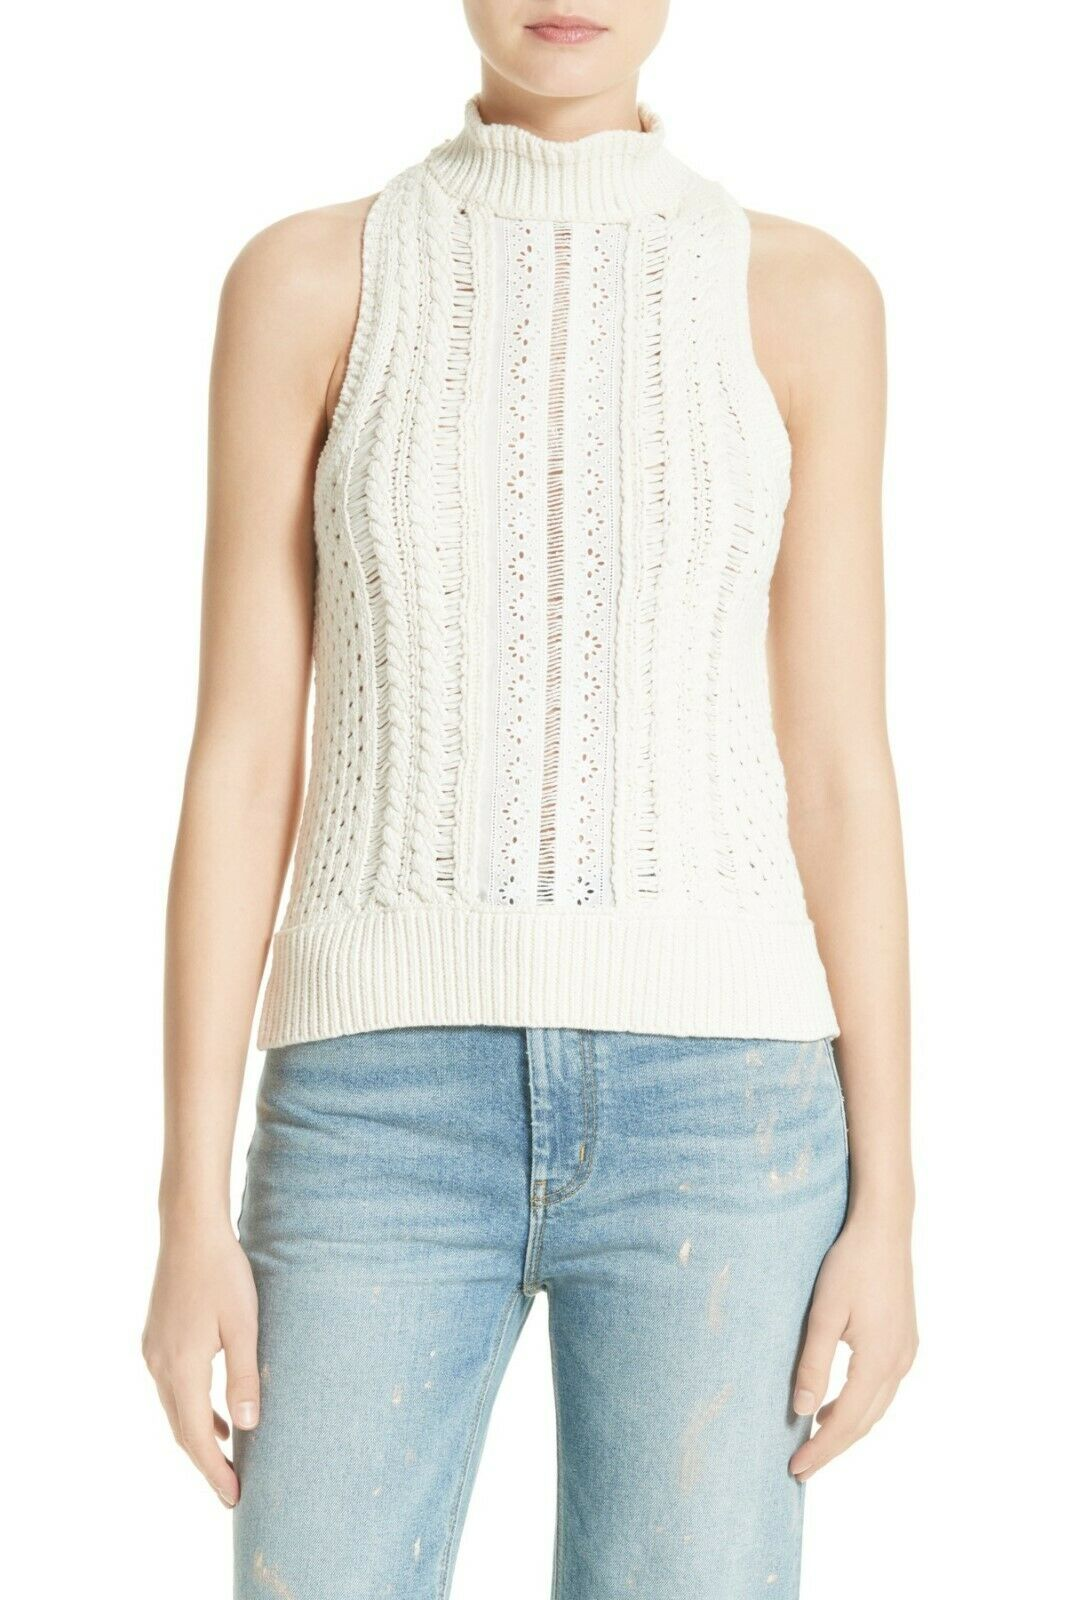 NEW Rebecca Taylor Mixed Eyelet Tank in Weiß - Größe M   T232